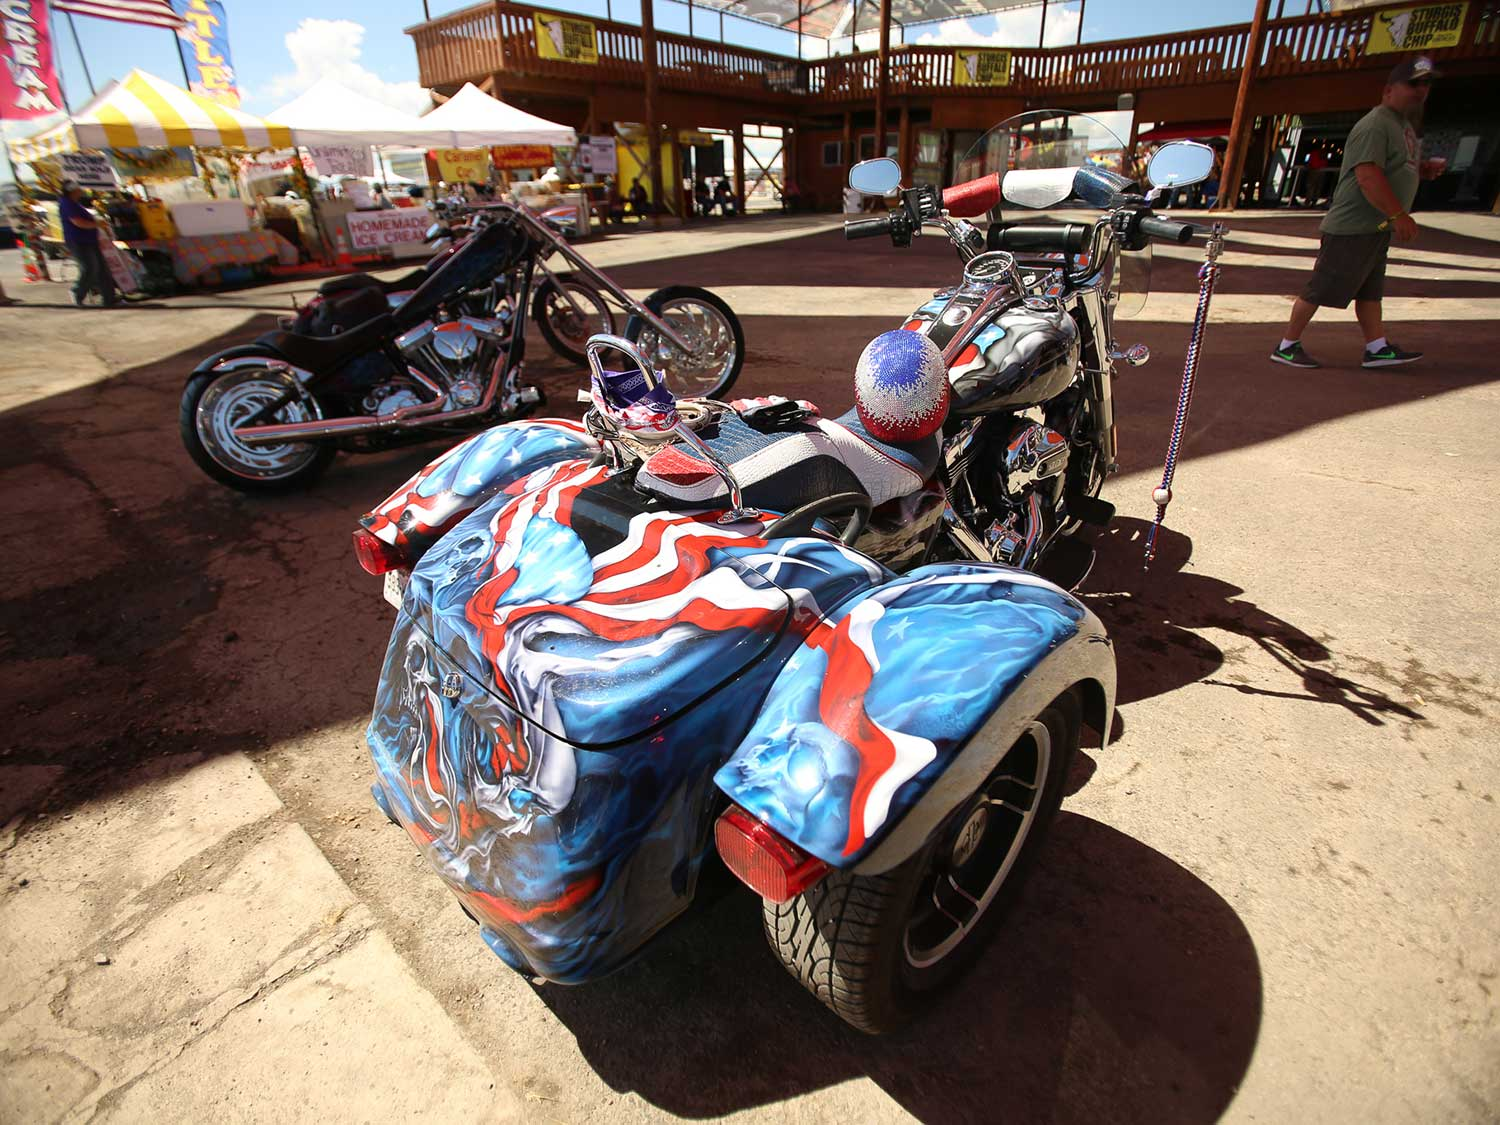 Patriotism on three wheels at the Sturgis Buffalo Chip